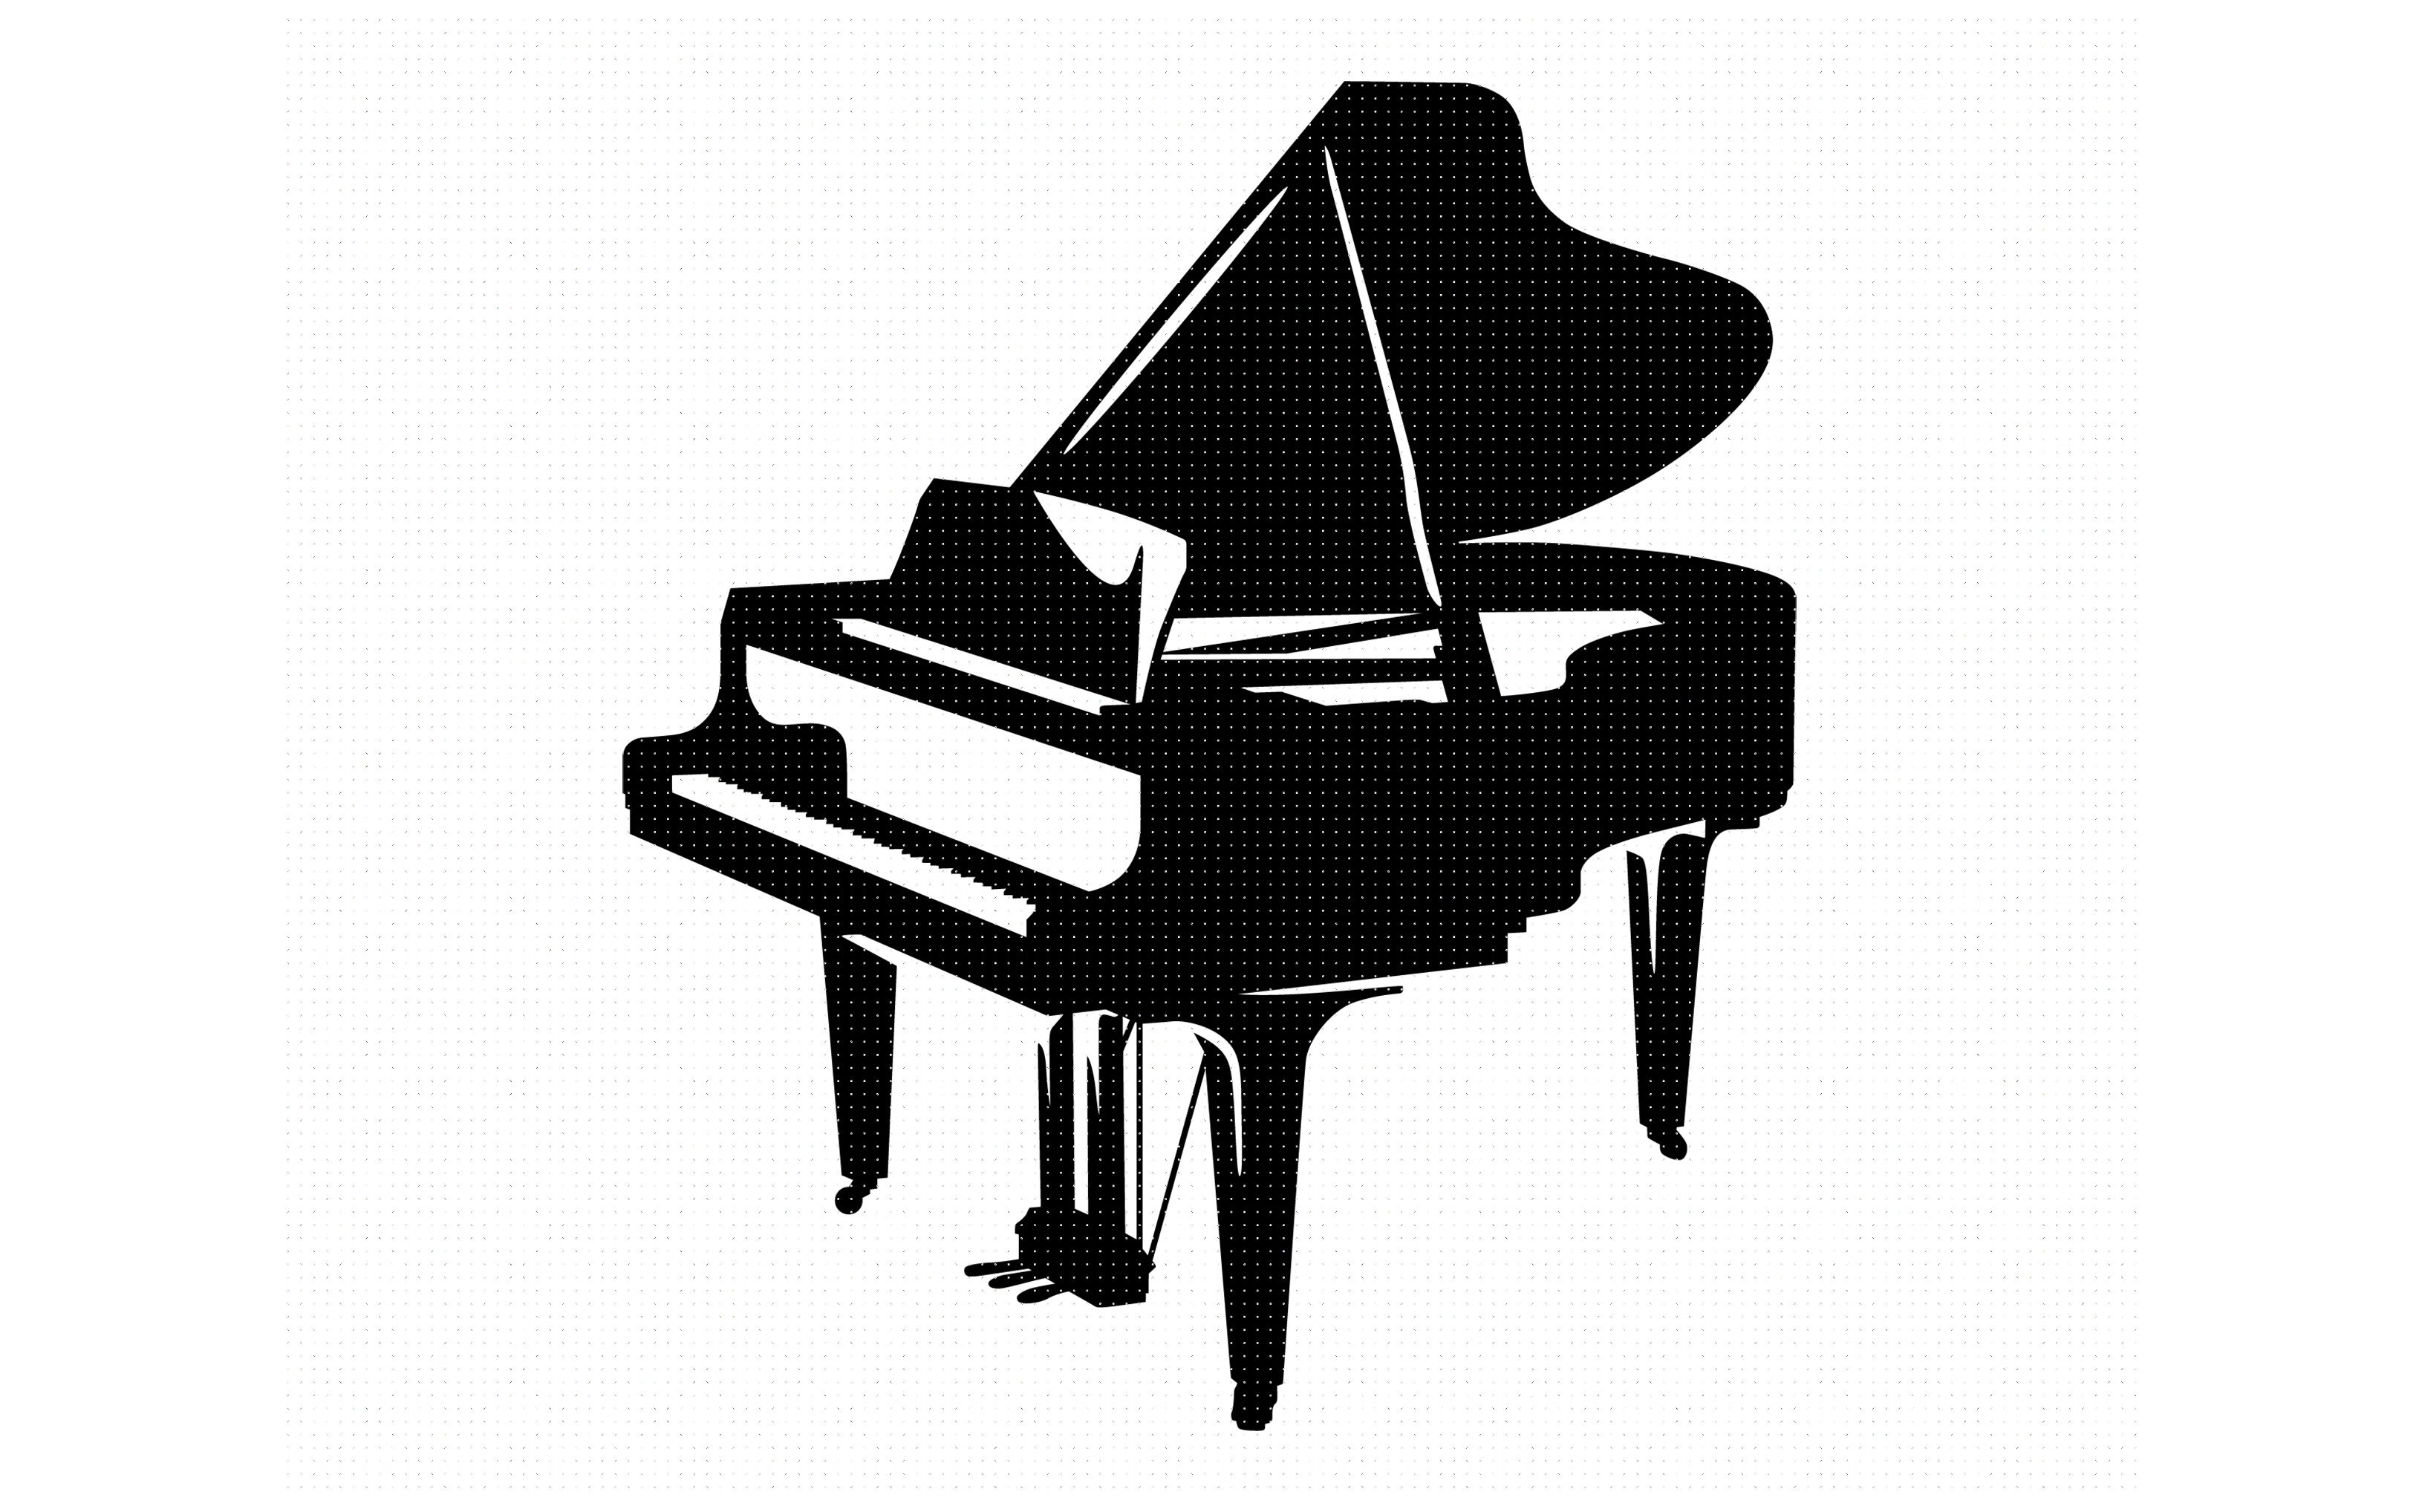 grand piano svg, dxf, png, eps, cricut, silhouette, cut file.